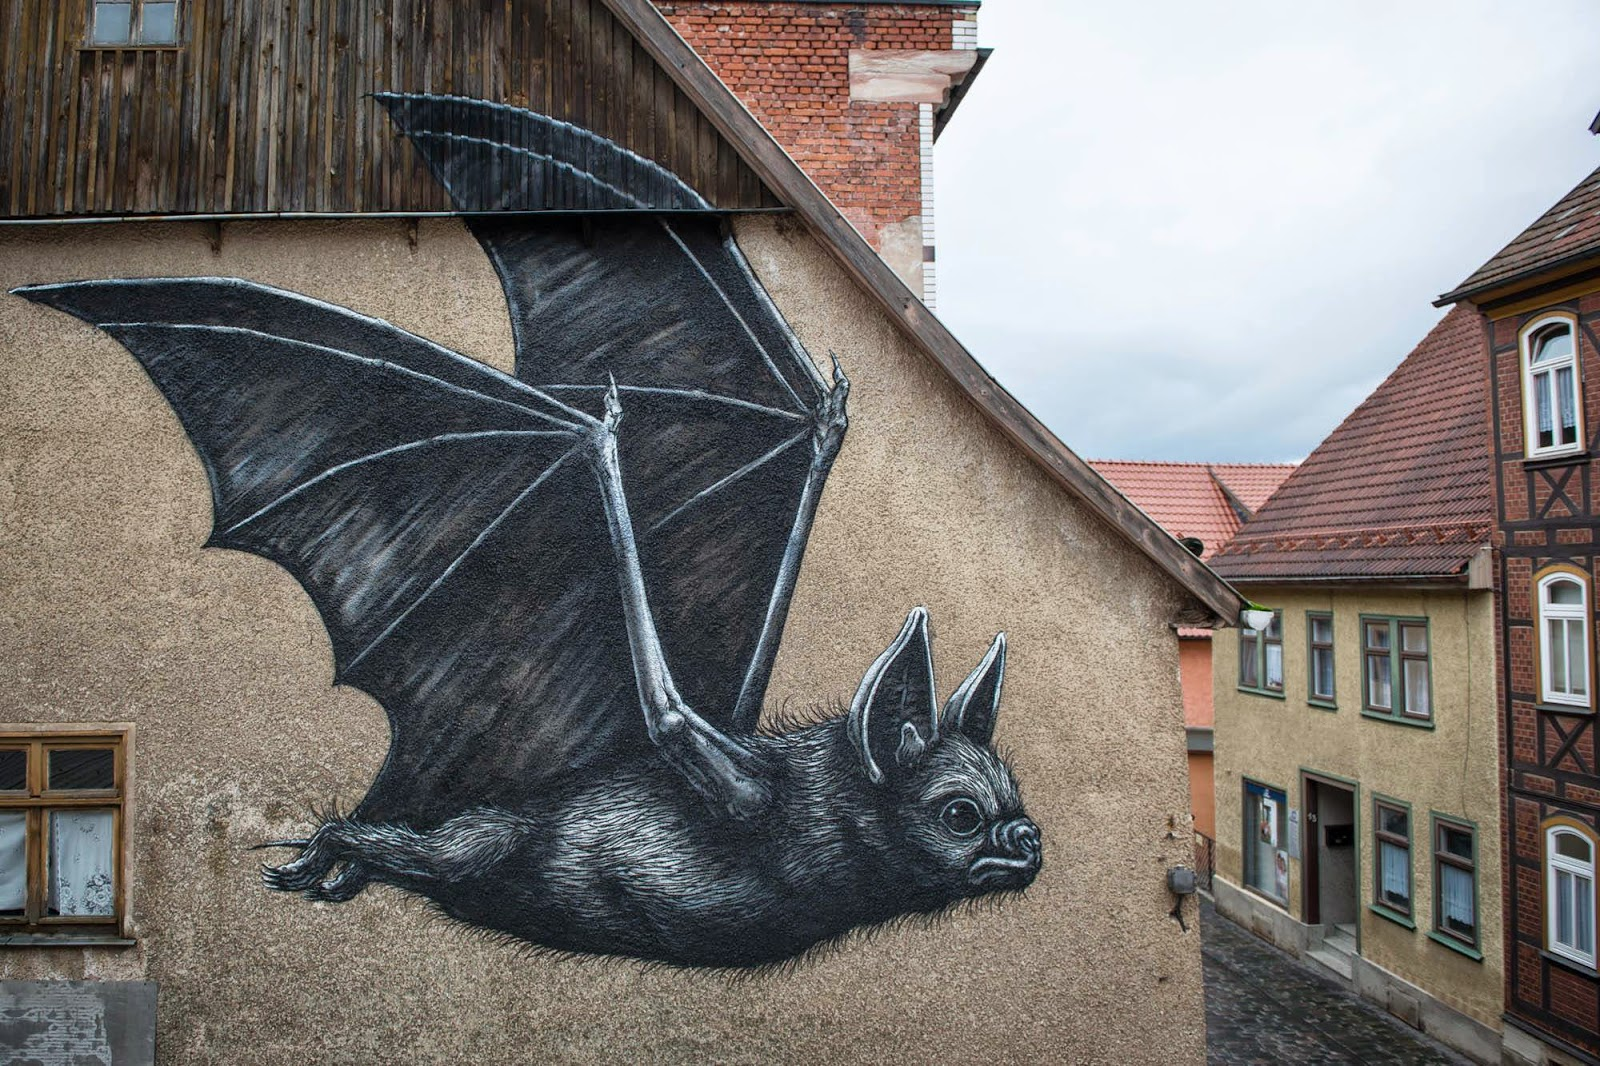 Our friend ROA is back in Europe where he was invited by the good lads from the WallCome project to paint on the streets of Schmalkalden in Germany.